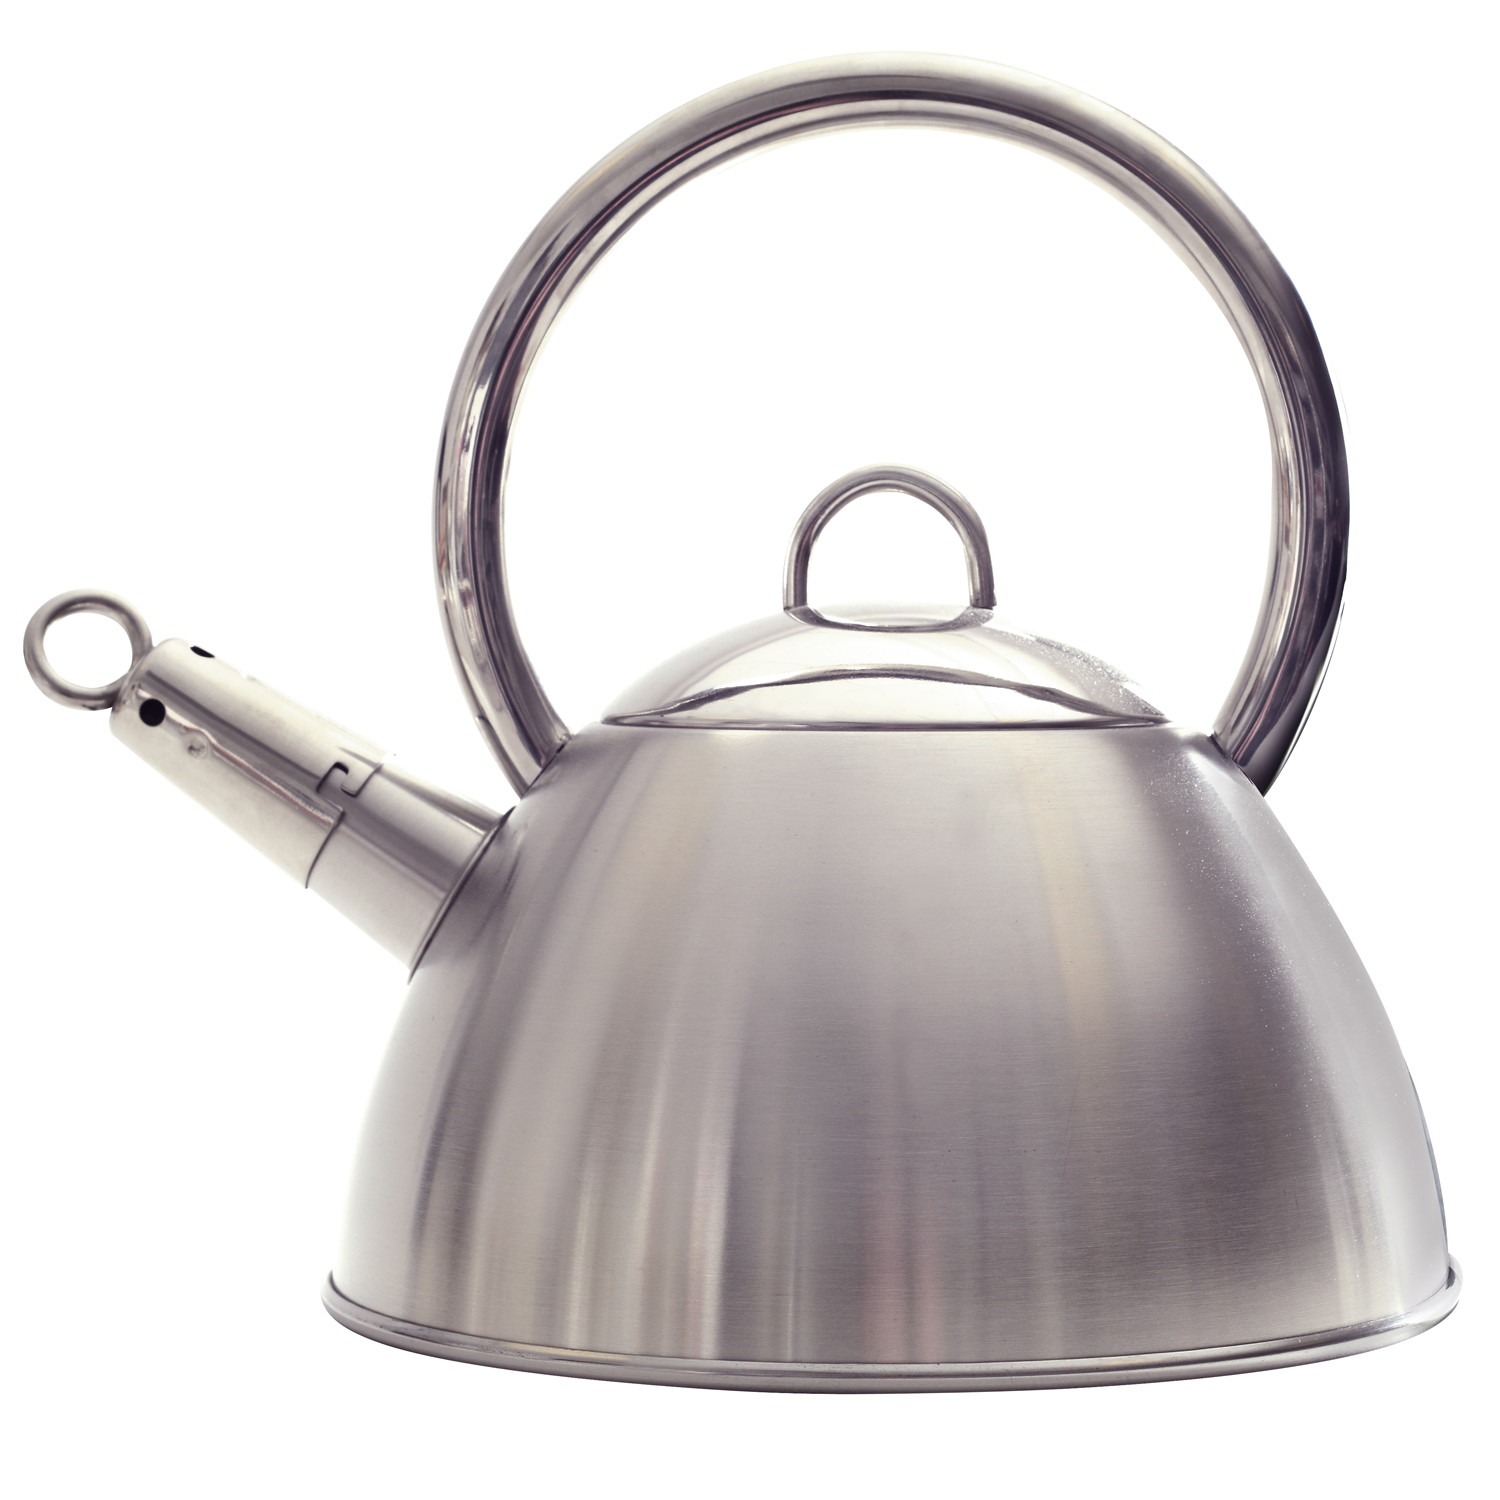 stainless steel whistling tea kettle  qt - norpro   stainless steel whistling tea kettle  qt